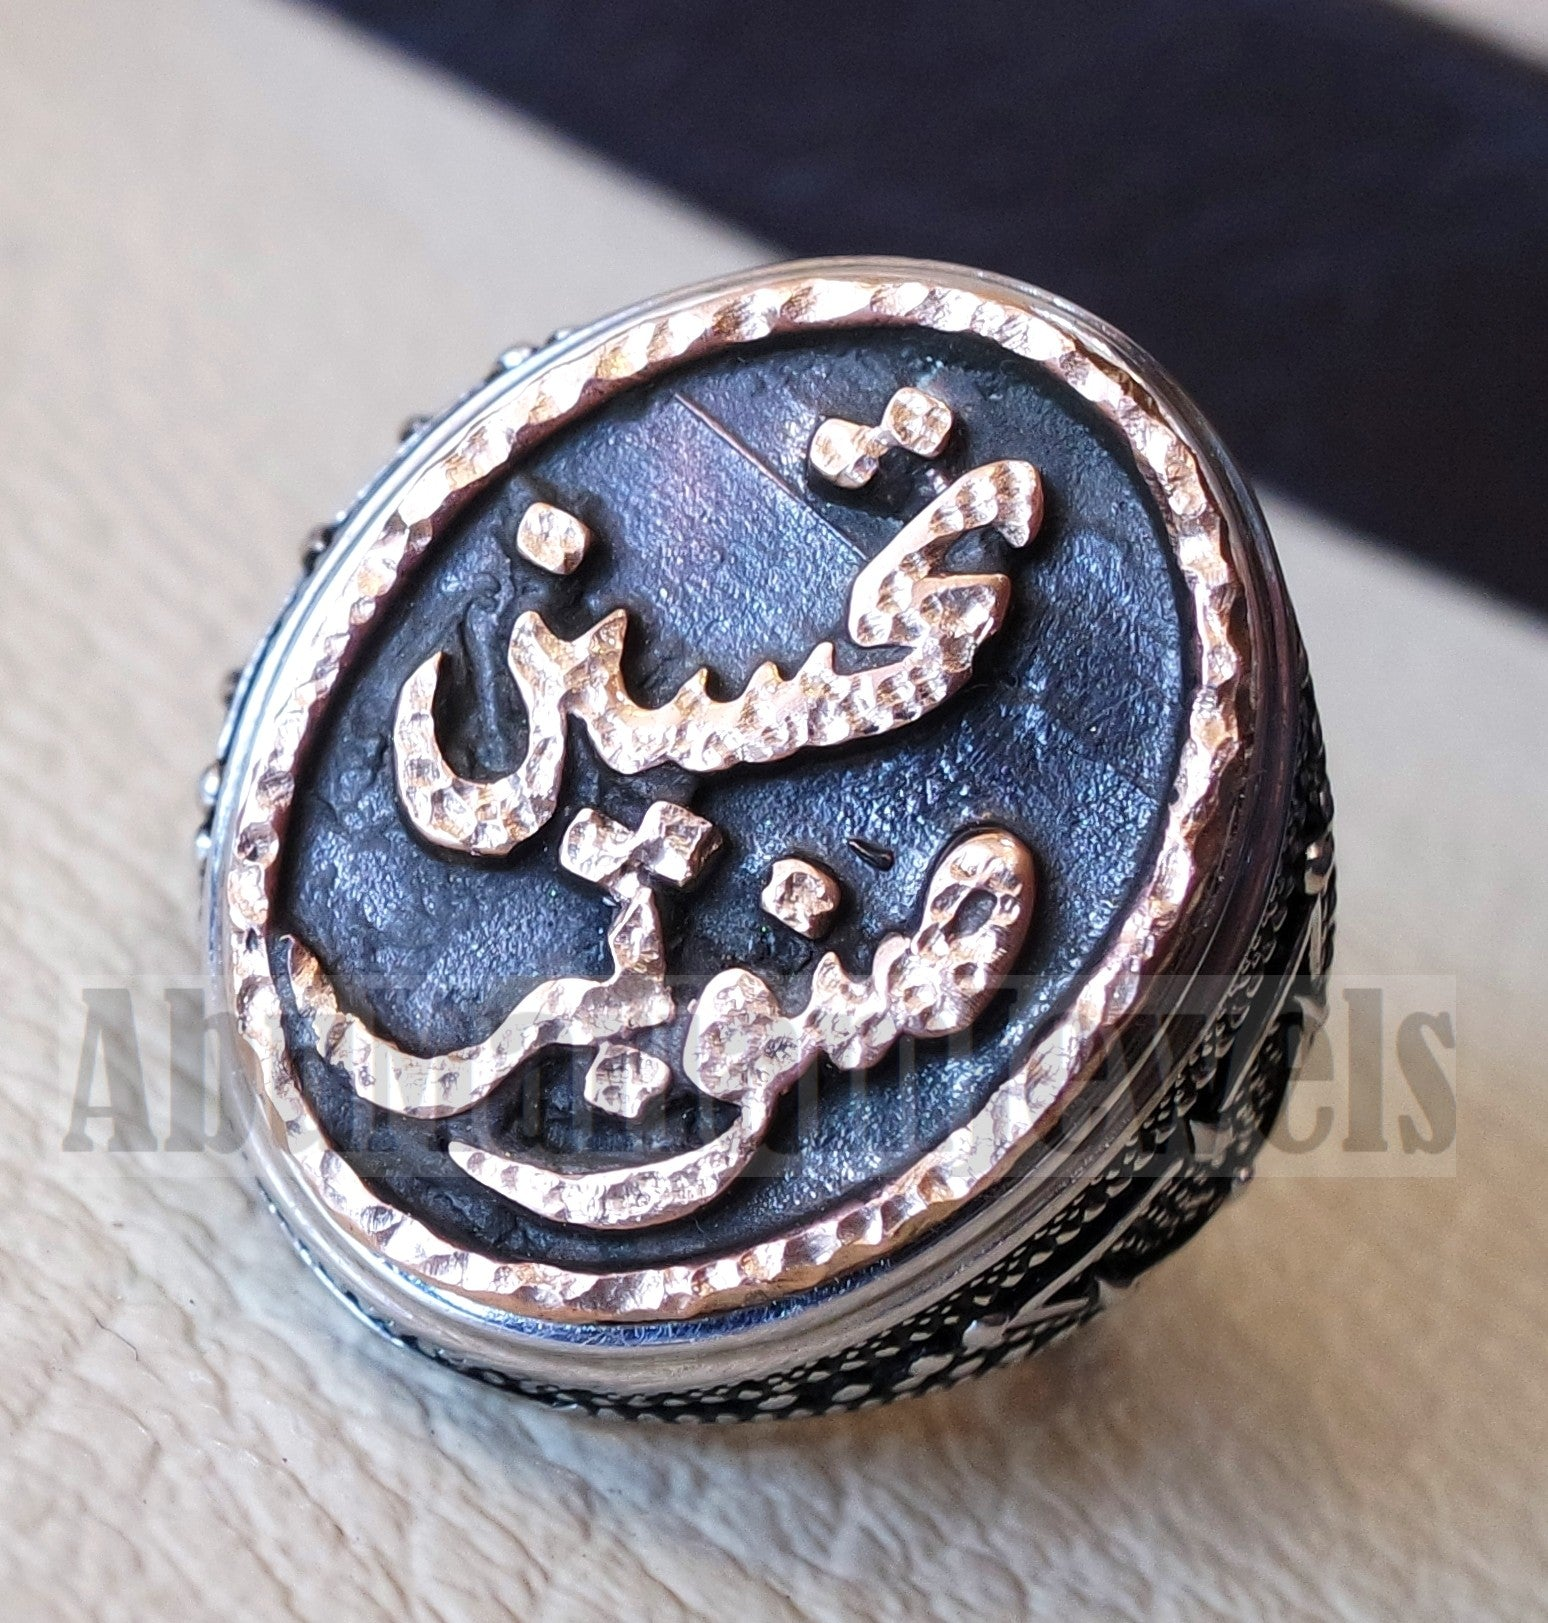 Customized Arabic calligraphy names ring personalized antique jewelry style sterling silver 925 and bronze any size TSB1001 خاتم اسم تفصيل